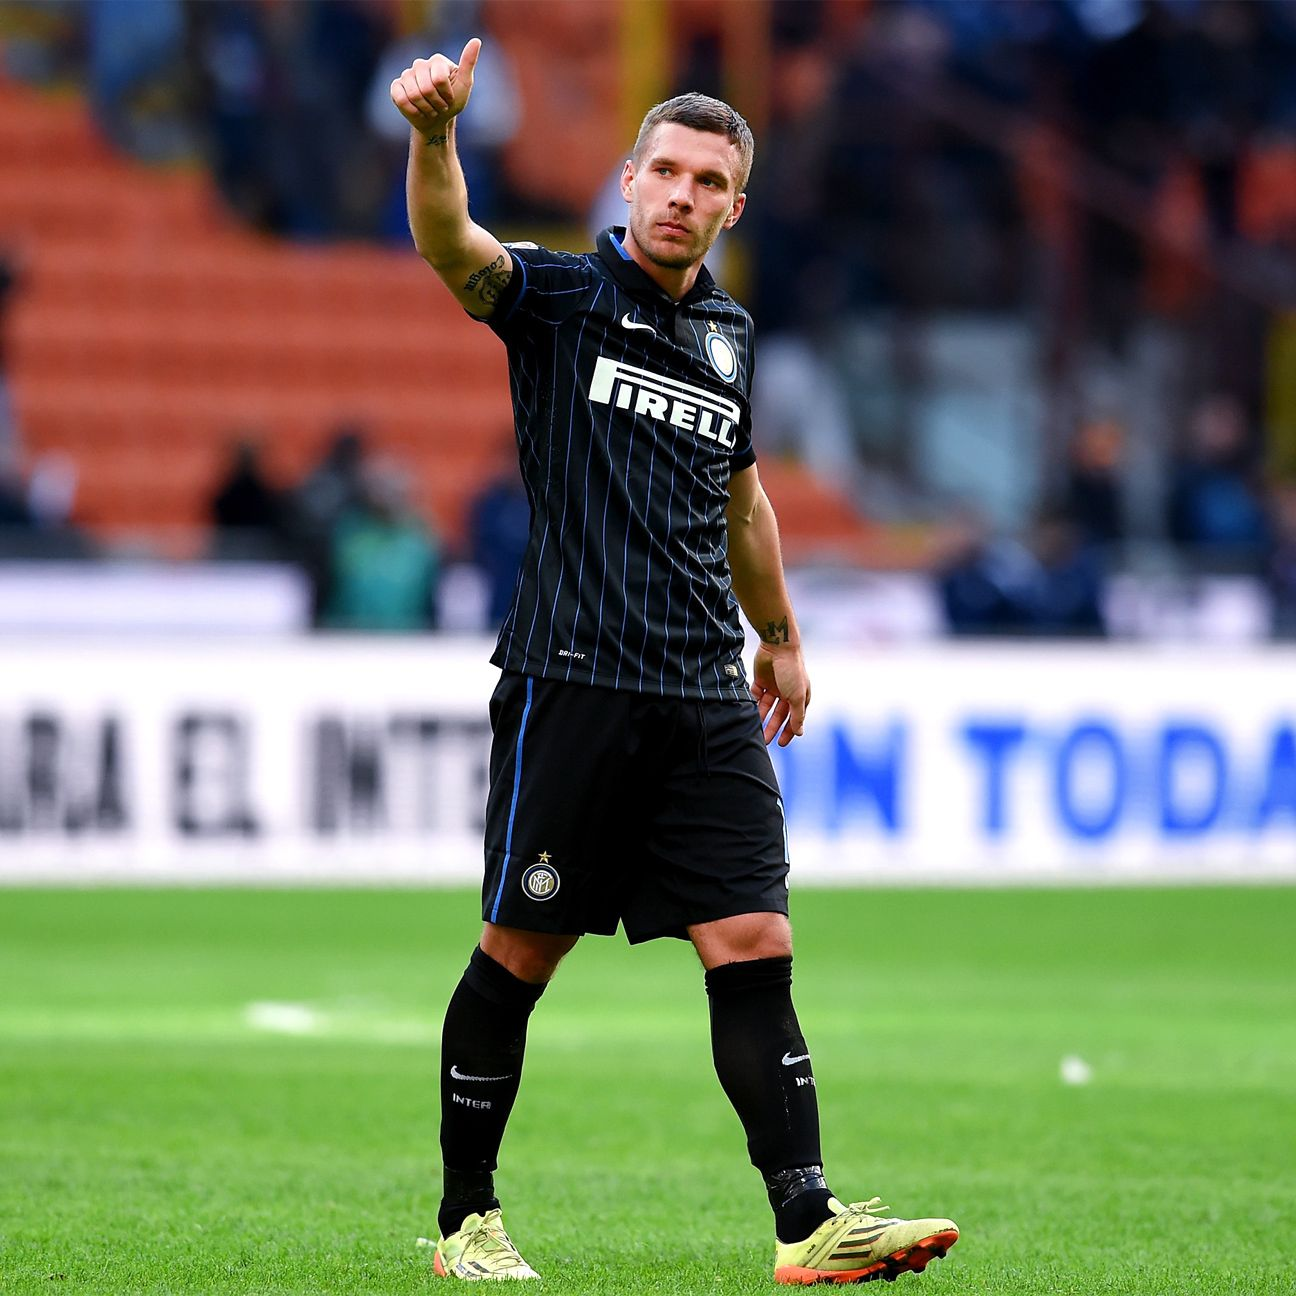 Lukas Podolski is the first German to play at Inter Milan in 22 years.